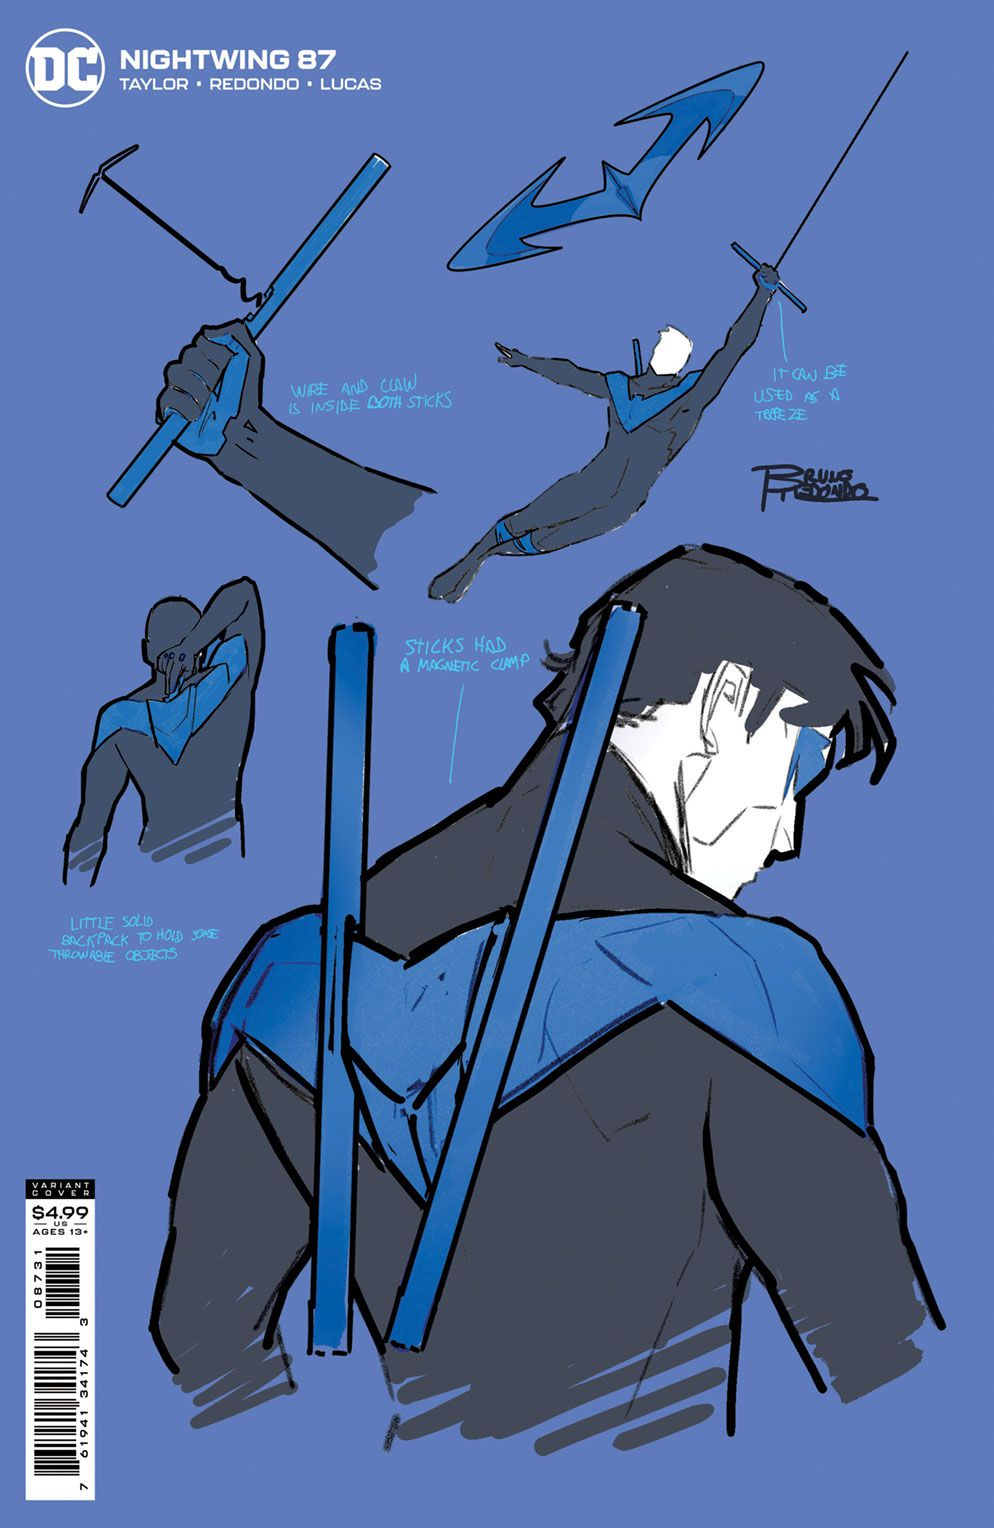 Details of Nightwing's costume and weapons on a variant cover of Nightwing #87 (2021).